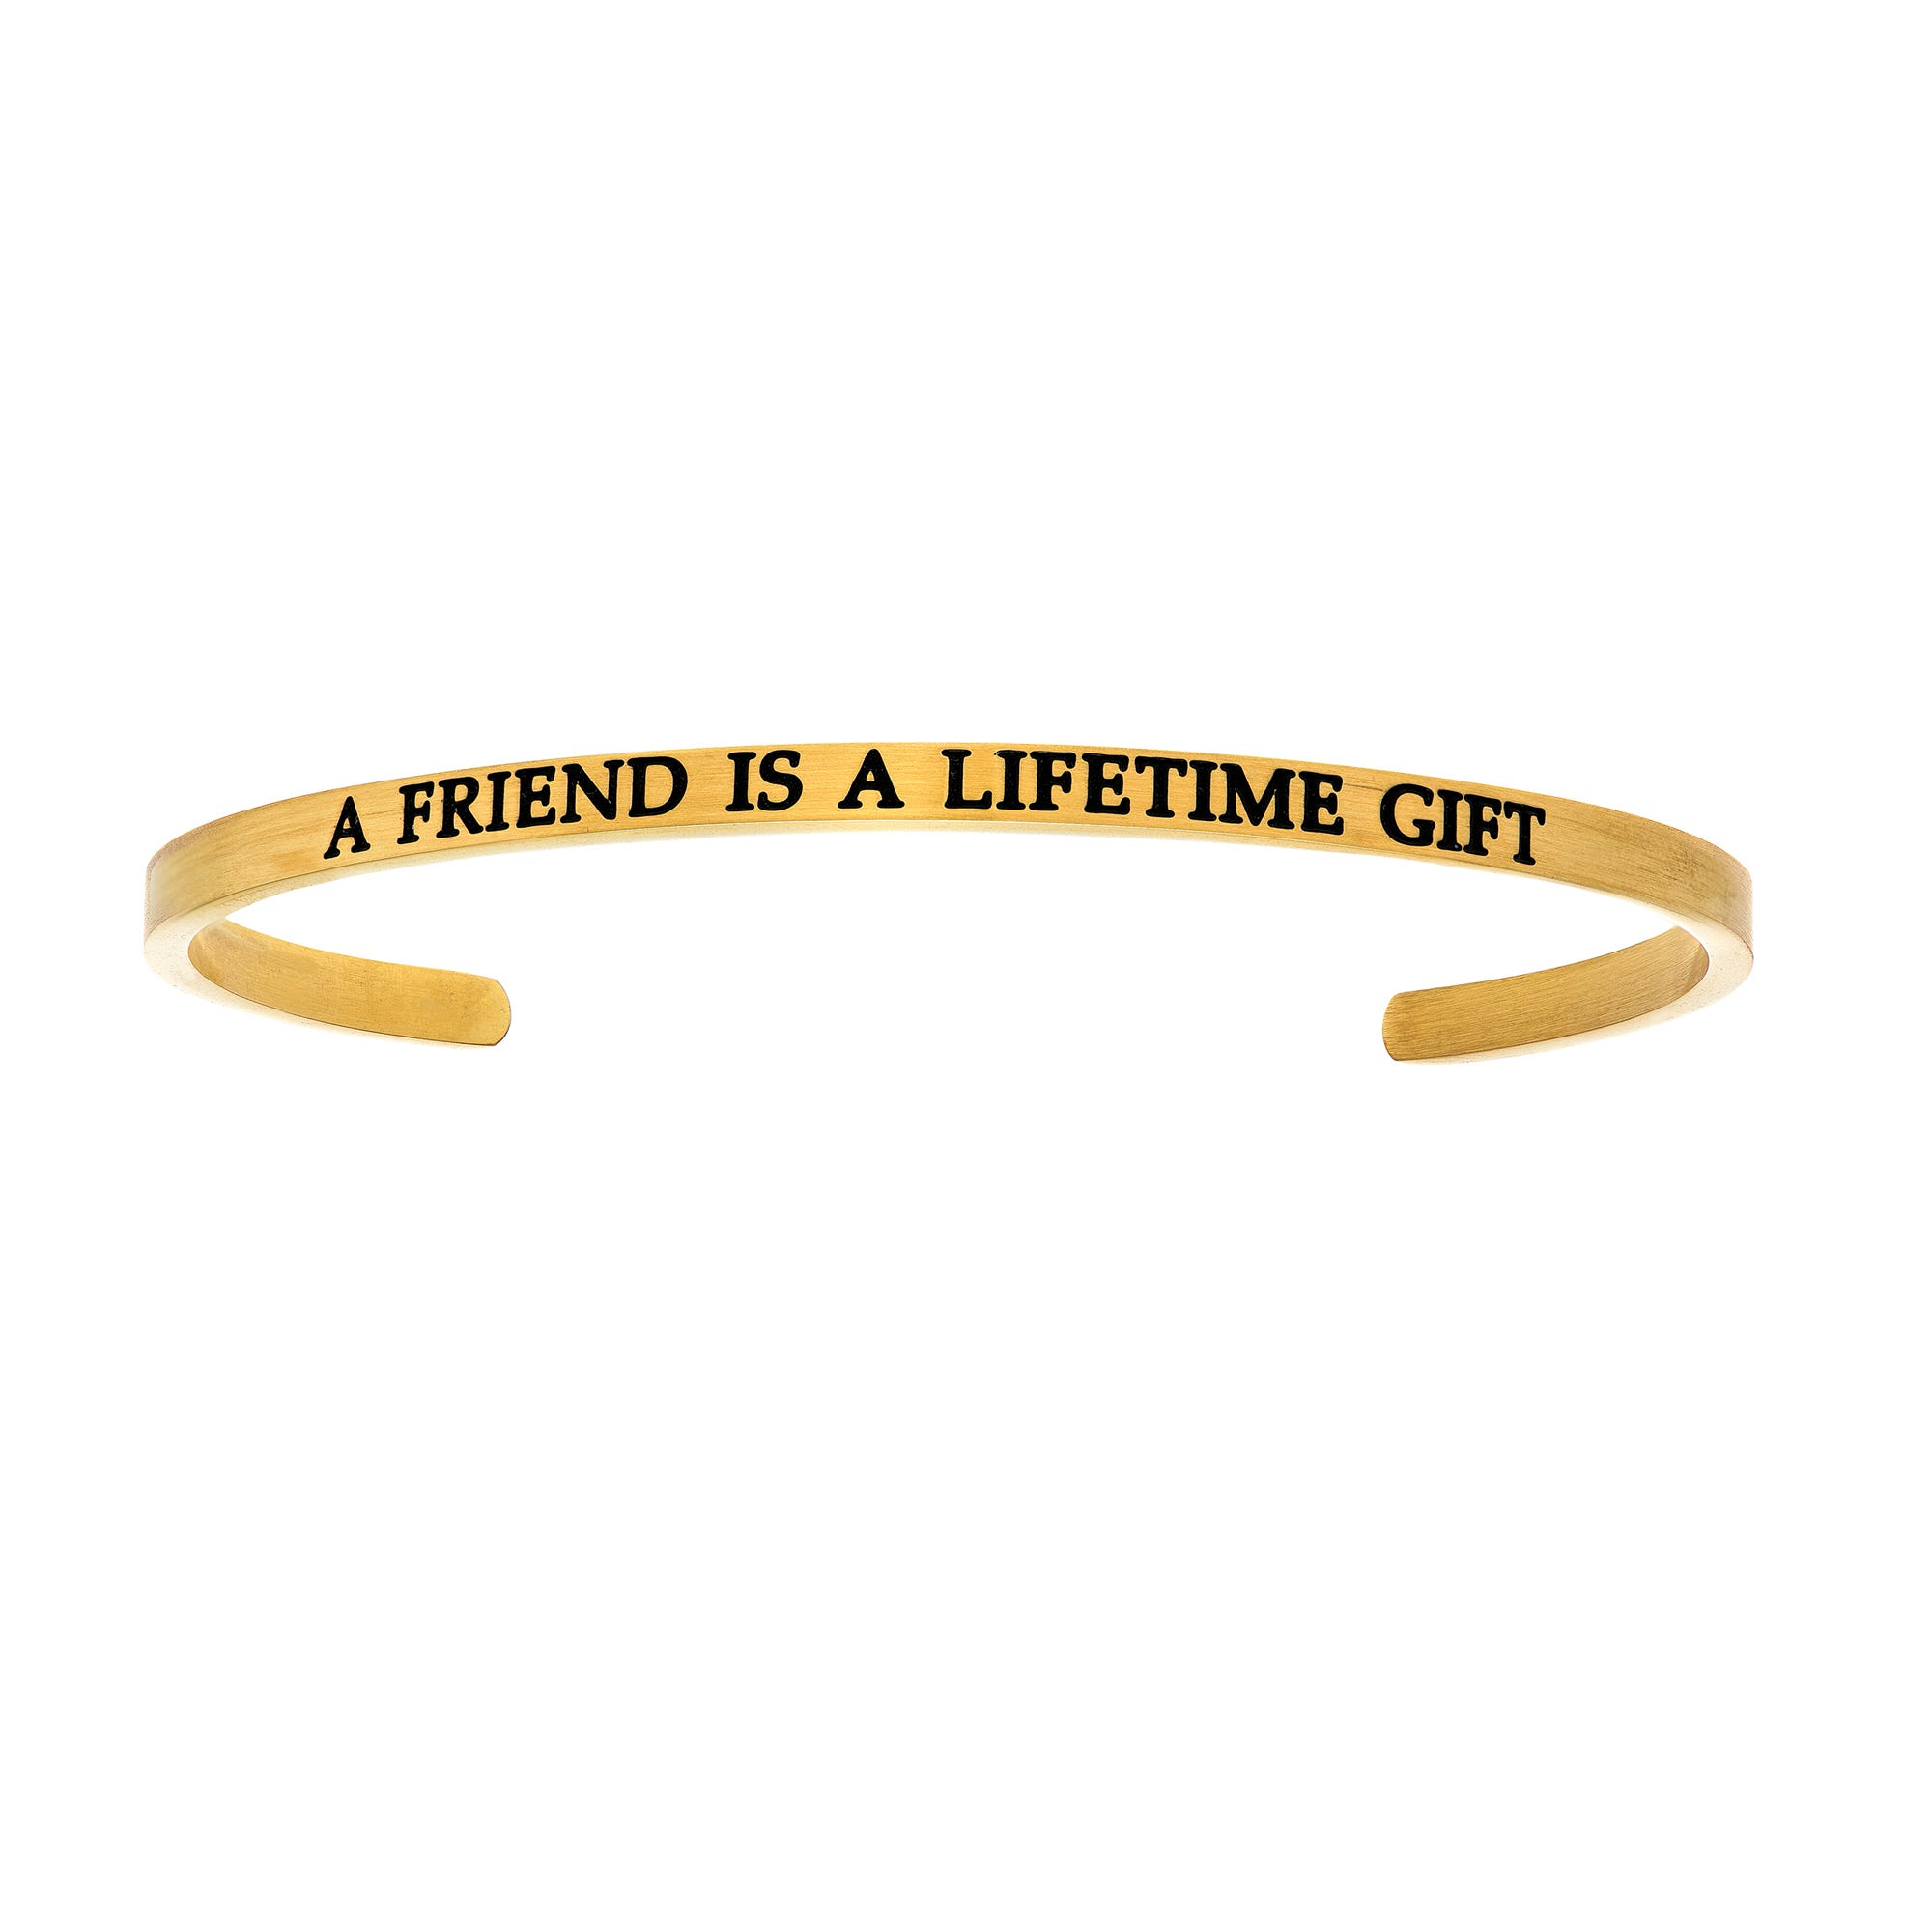 A Friend Is A Lifetime. Intuitions Cuff Bracelet in Yellow Stainless Steel